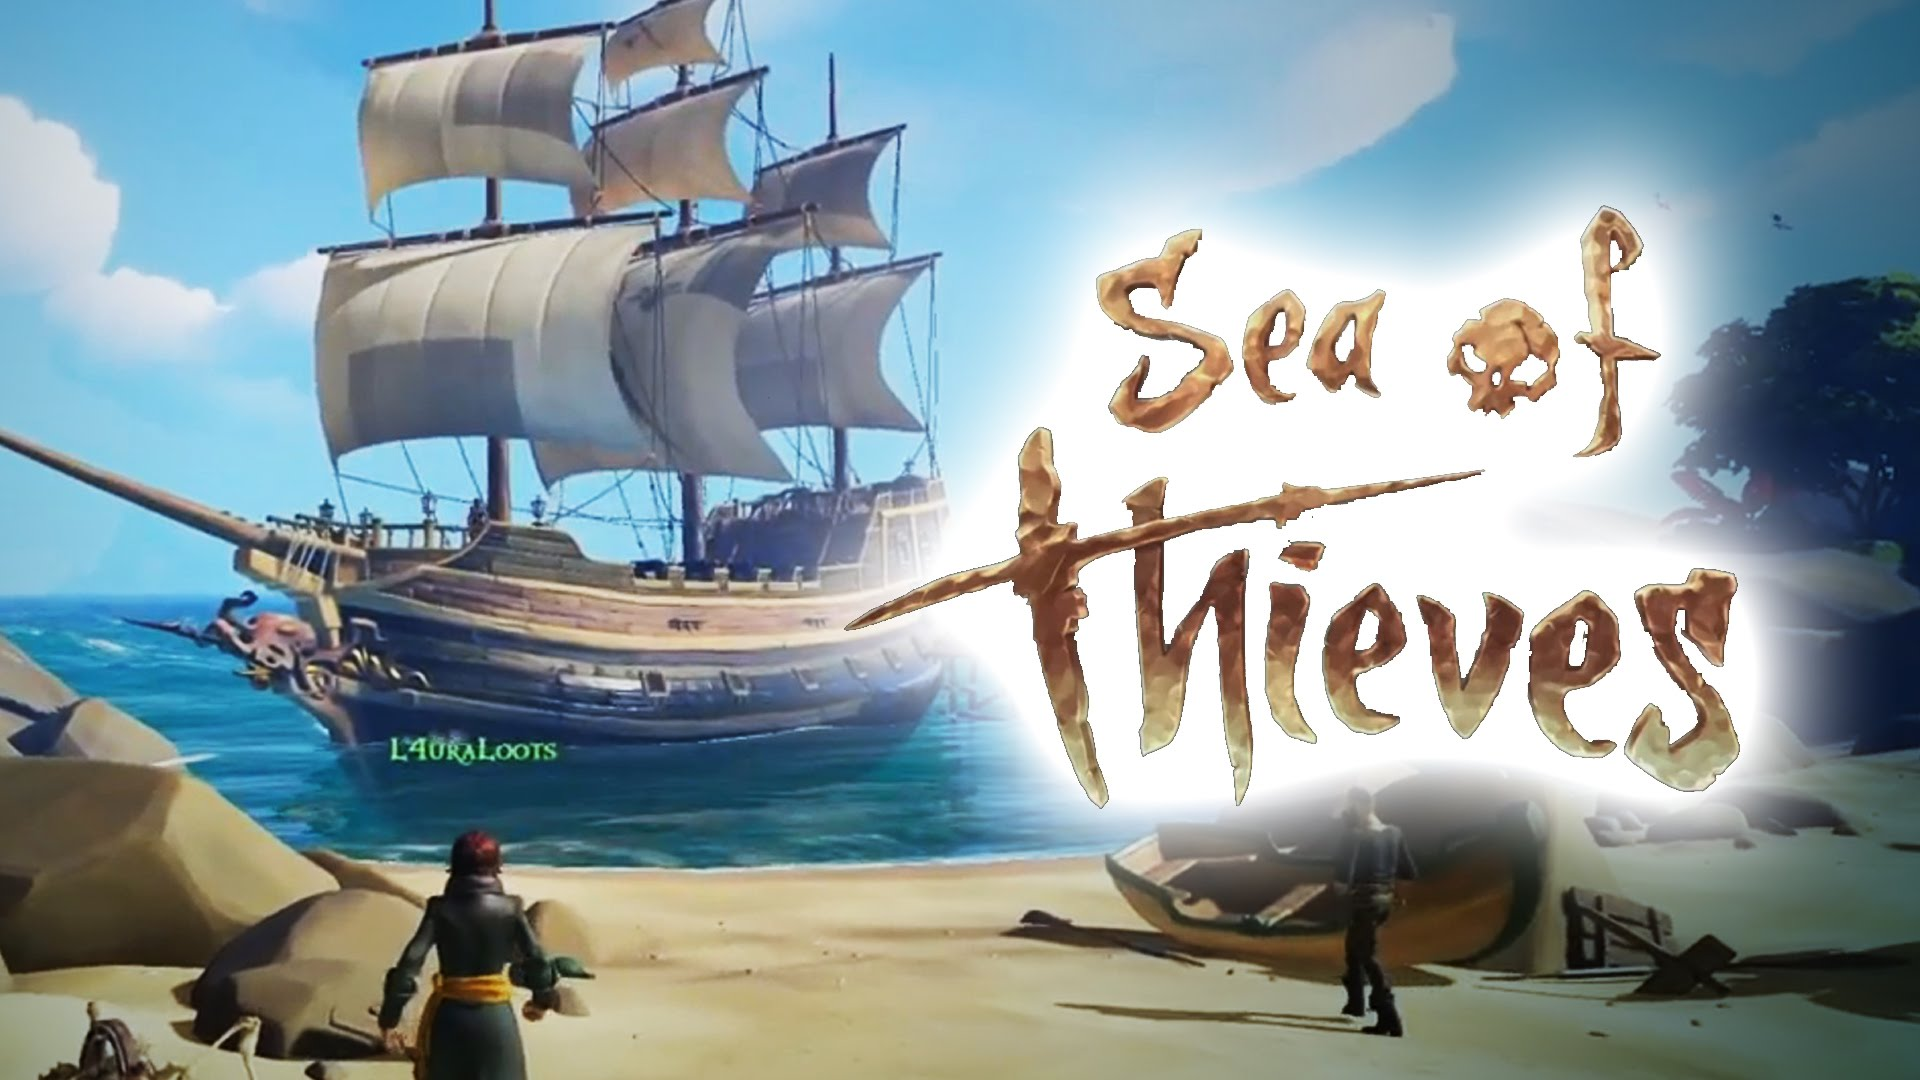 Sea of Thieves - Sea of Thieves